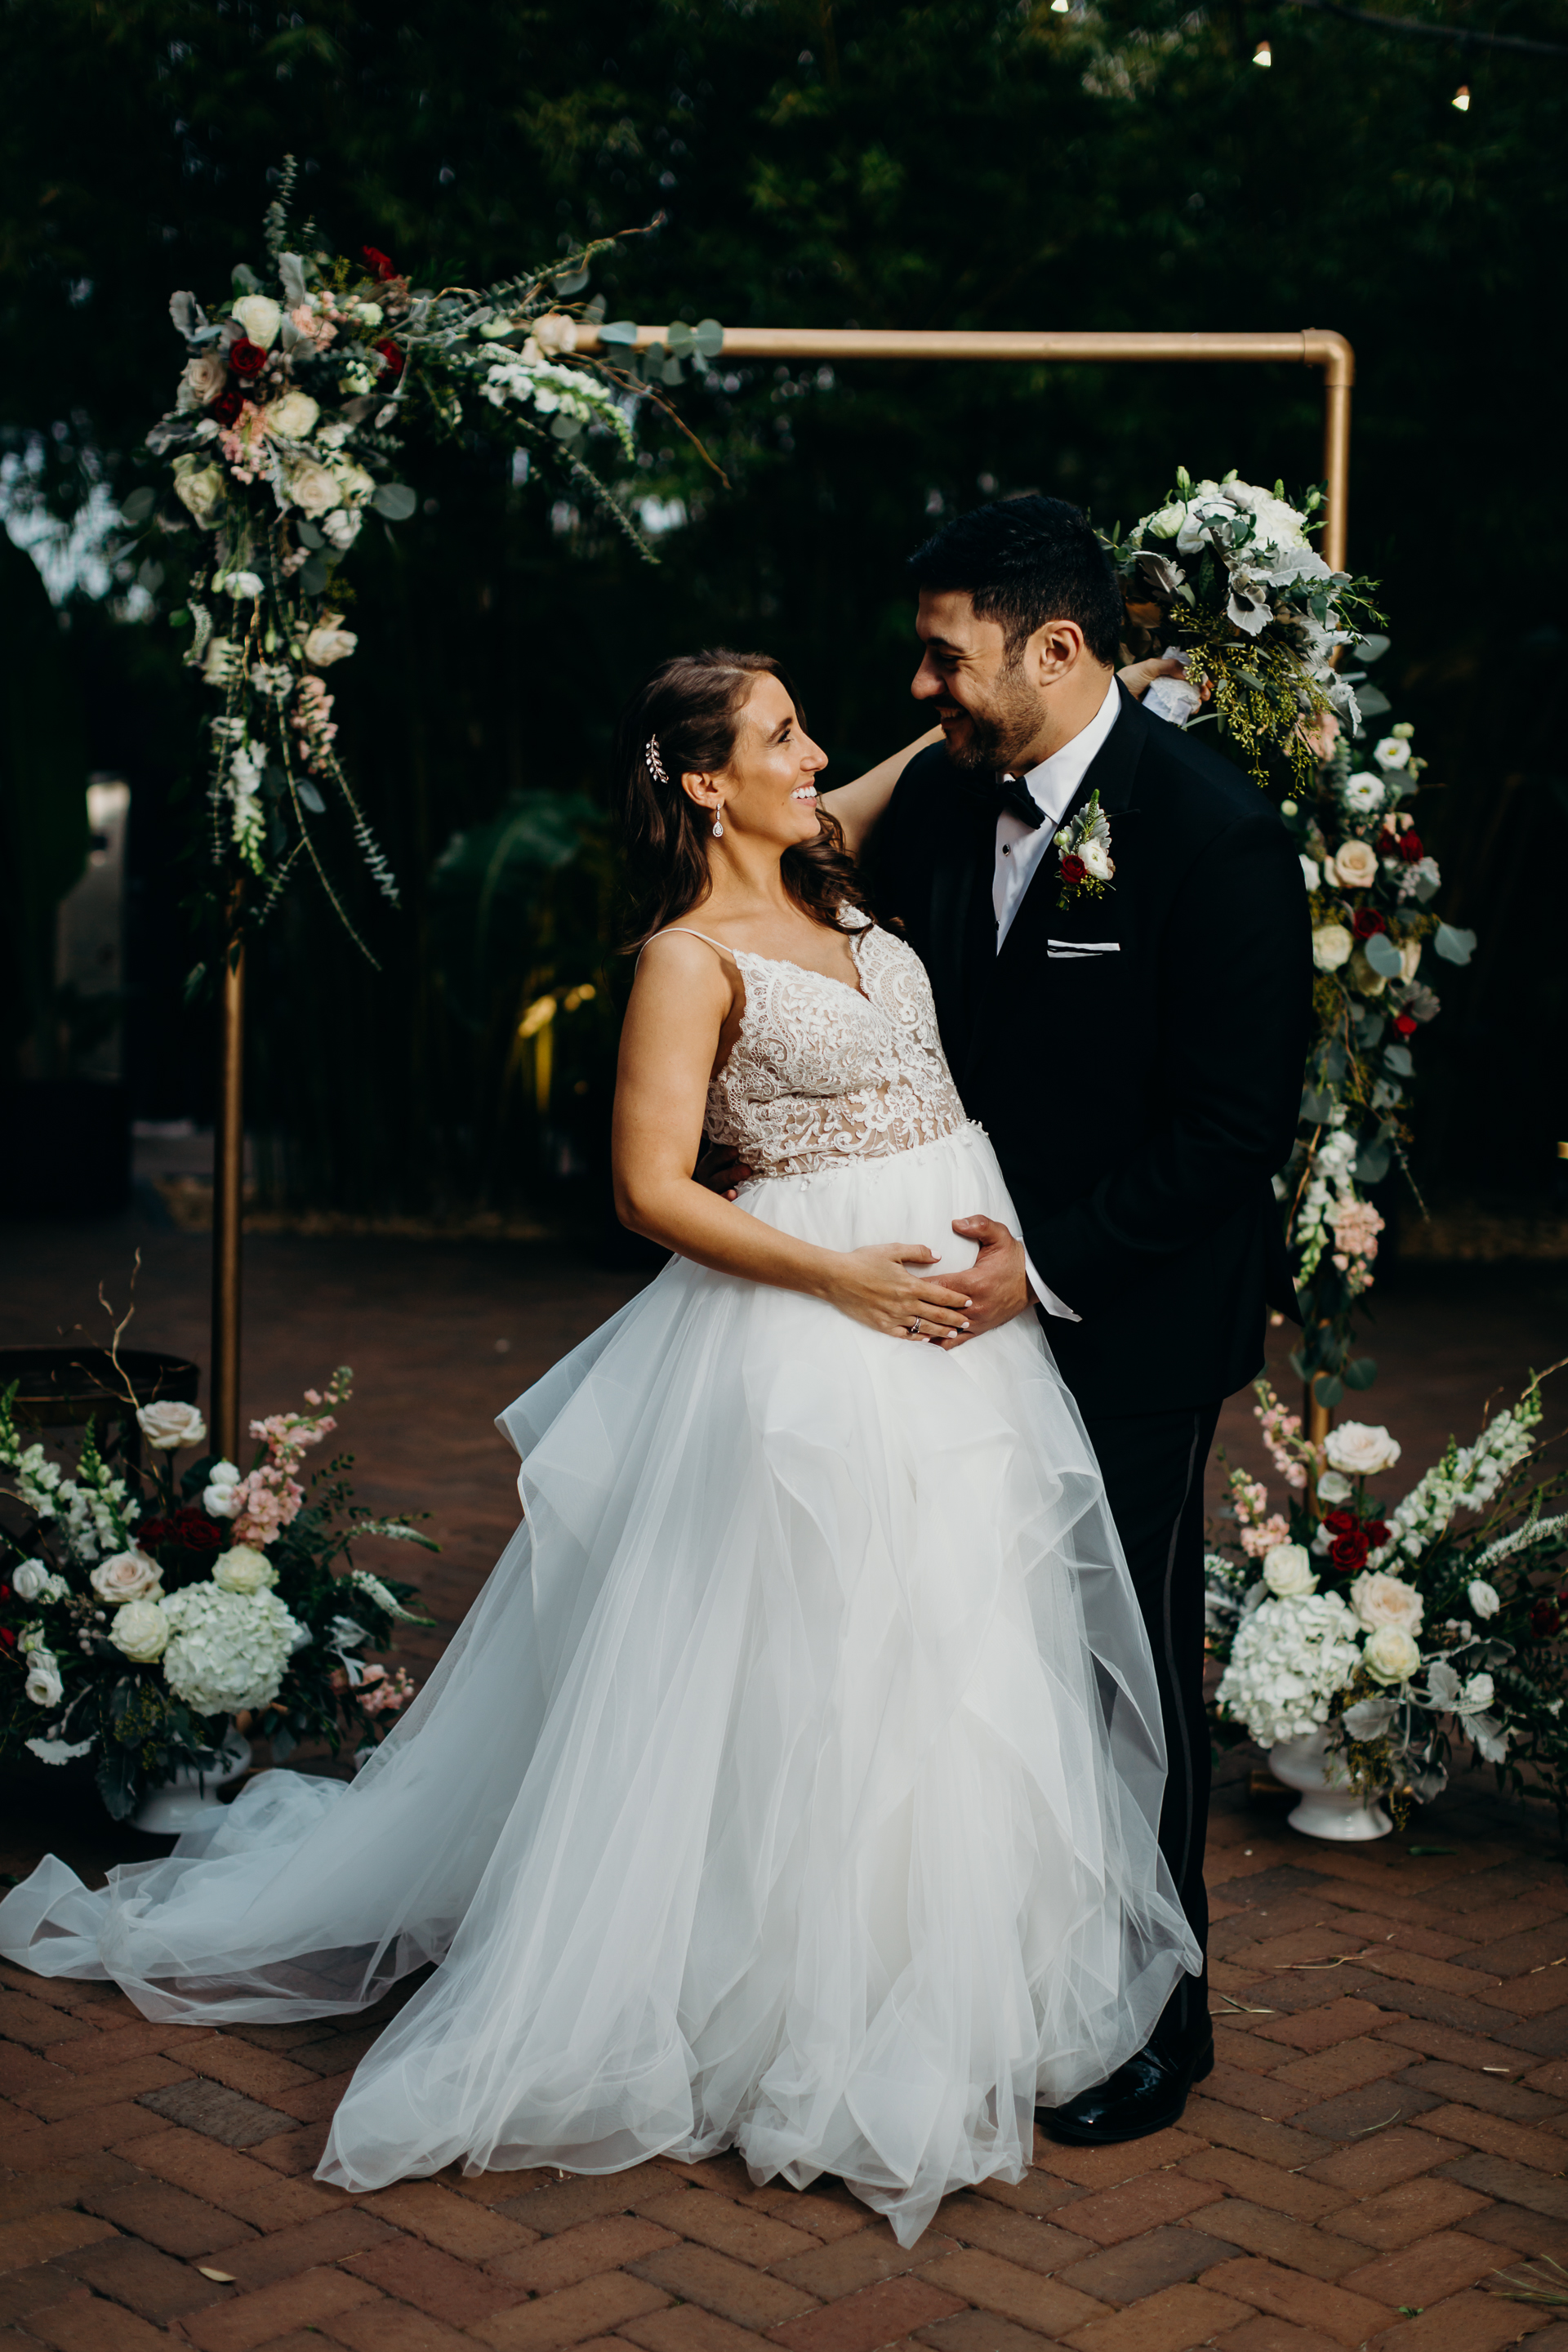 Gianna Keiko Atlanta San Francisco NYC Wedding Engagement Wedding Elopement Photographer_Sneak Peek-45.jpg